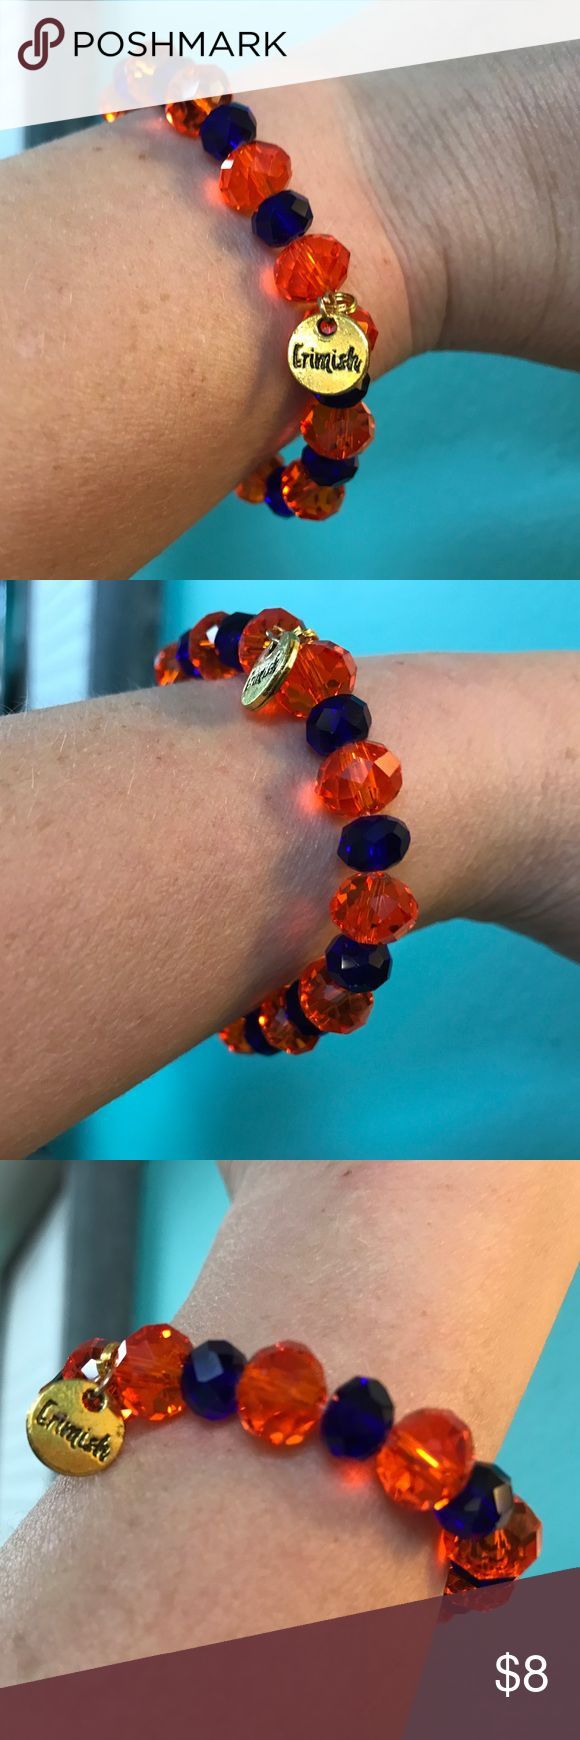 Erimish Game Day Bracelet Florida Gators Orange & Blue bracelet, part of the Erimish Game Day Collection for the Florida Gators. Show your team spirit and sparkle at the same time! This can be worn alone or as part of a stack. Bracelets come in a jar so there is no tag but they are all brand new! Erimish Jewelry Bracelets